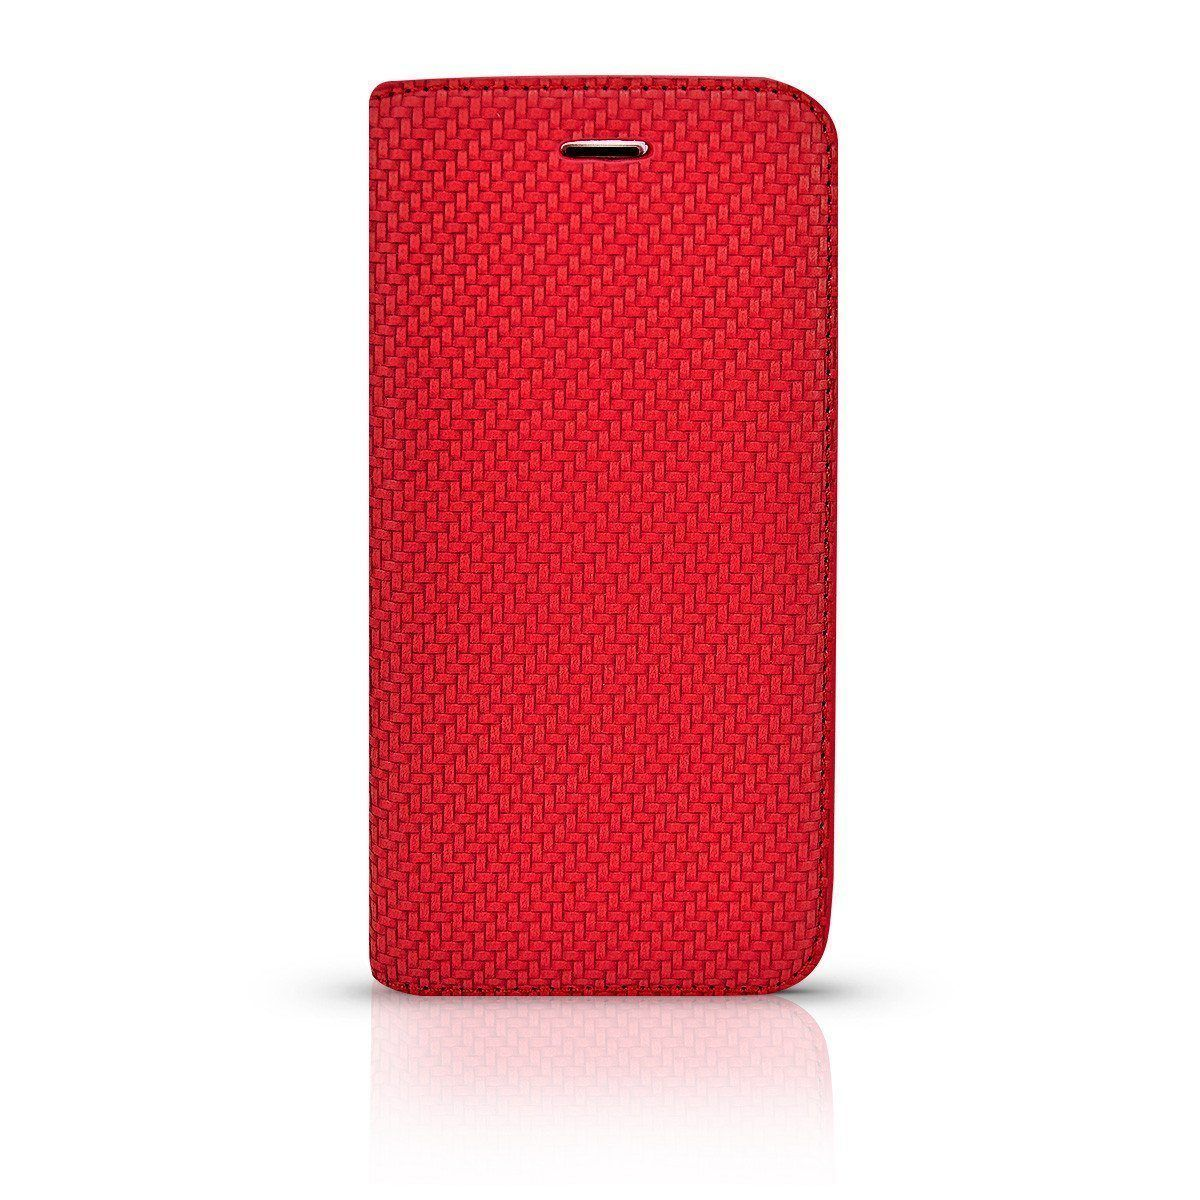 Matte Leather Case for i7 /8 - Red